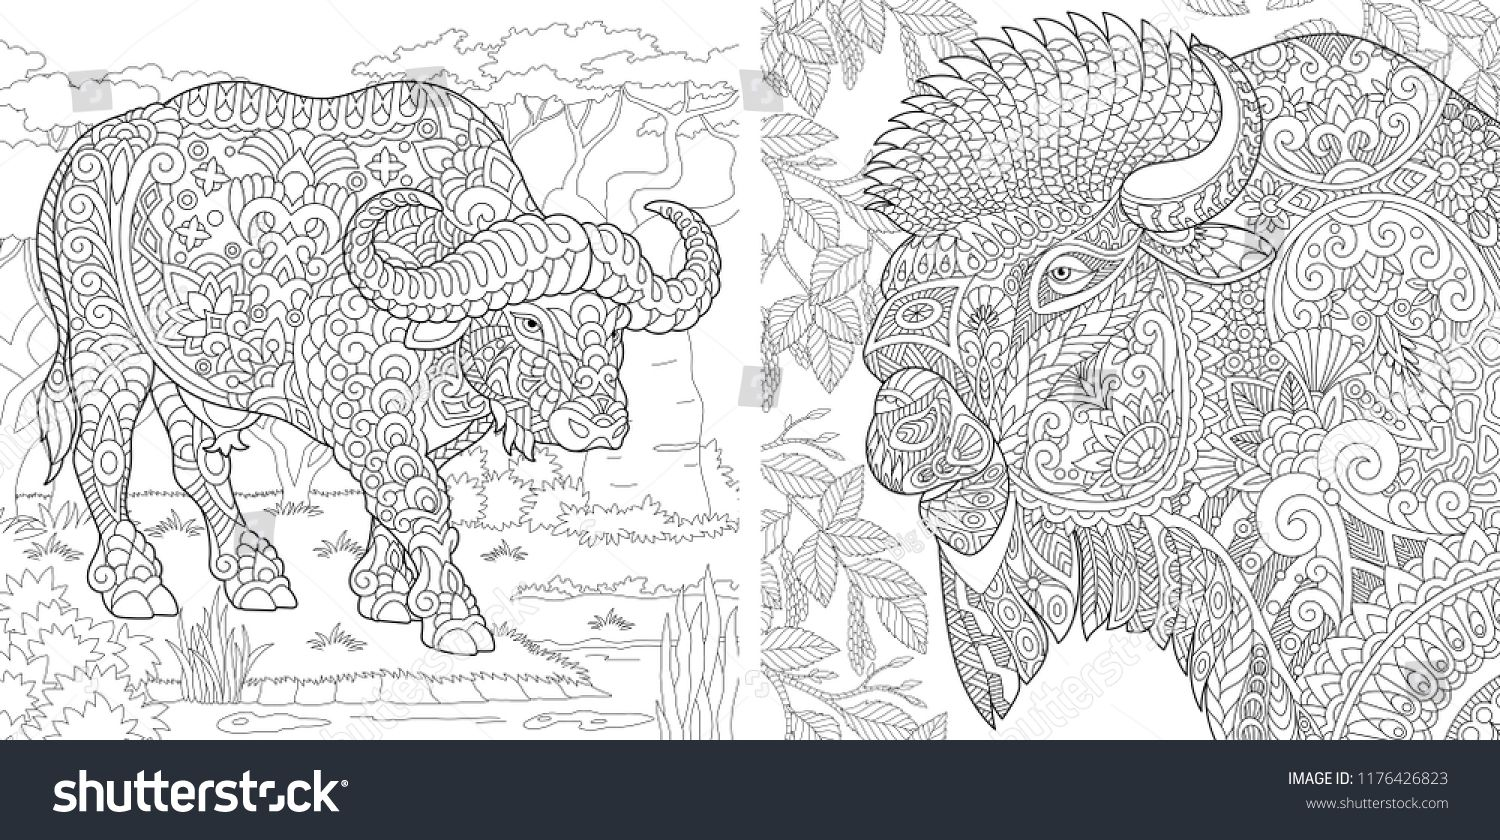 Coloring Pages Coloring Book For Adults Colouring Pictures With Buffalo And Bison Antistress Freehand Sketch Coloring Books Coloring Pages Drawing Sketches